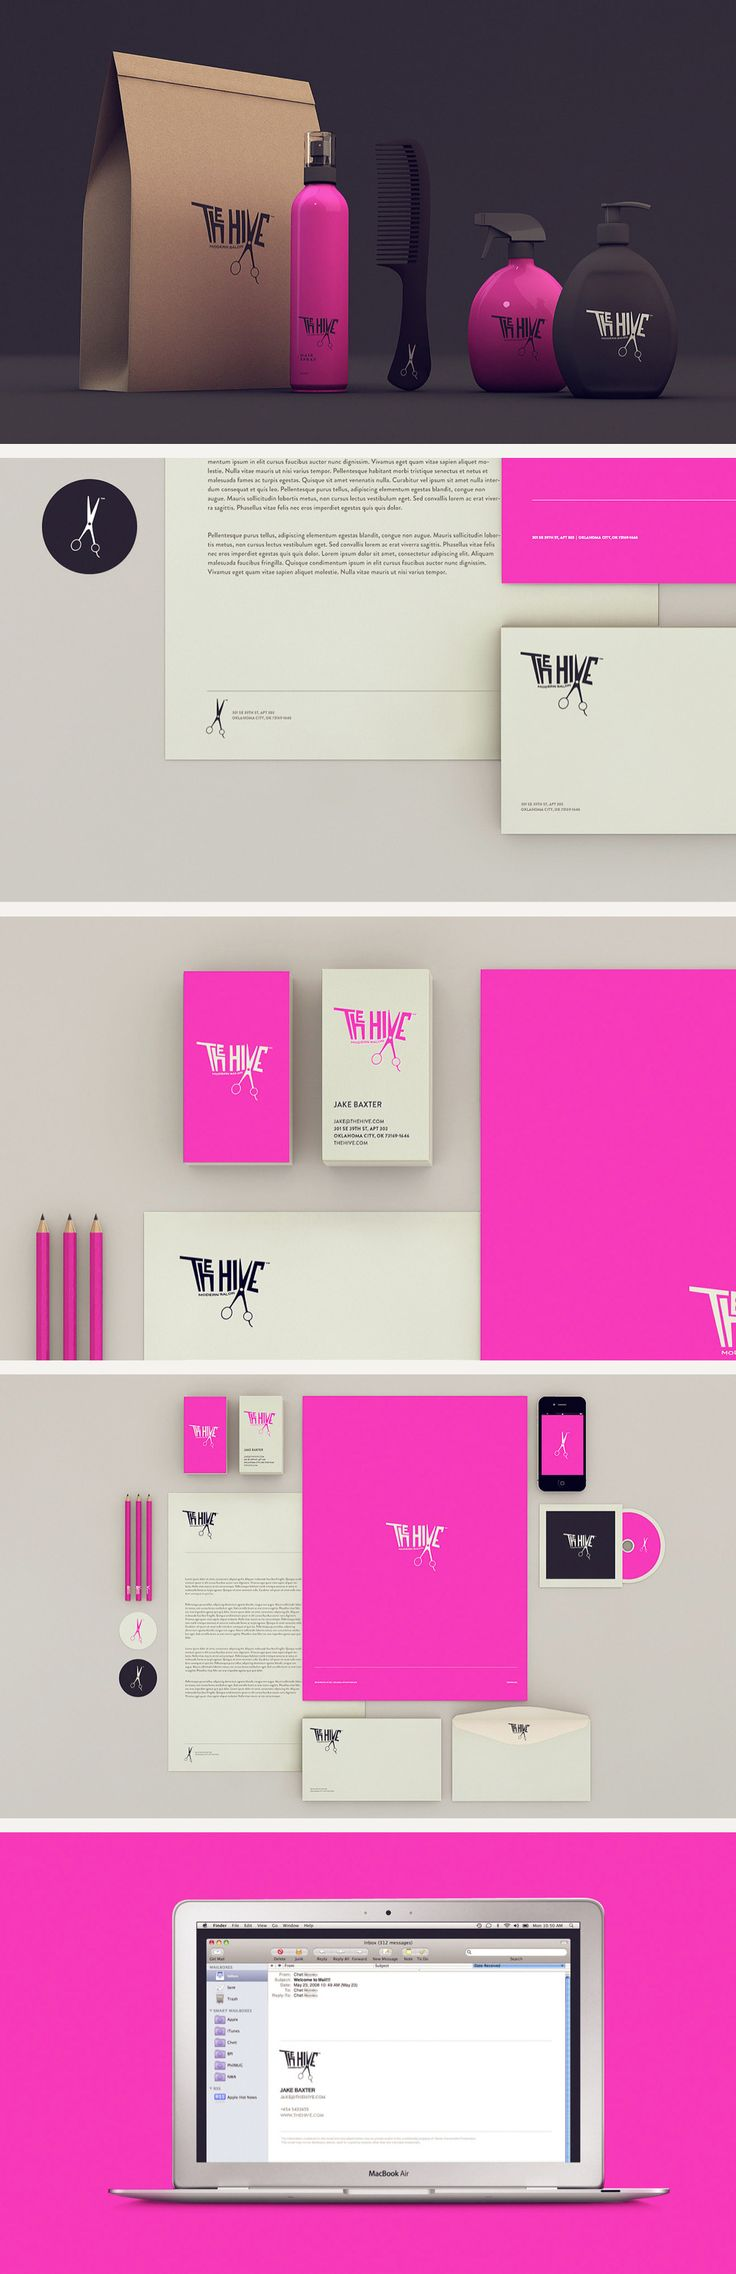 The Hive Isabela Rodrigues. Who likes fuchsia #identity #packaging #branding PD